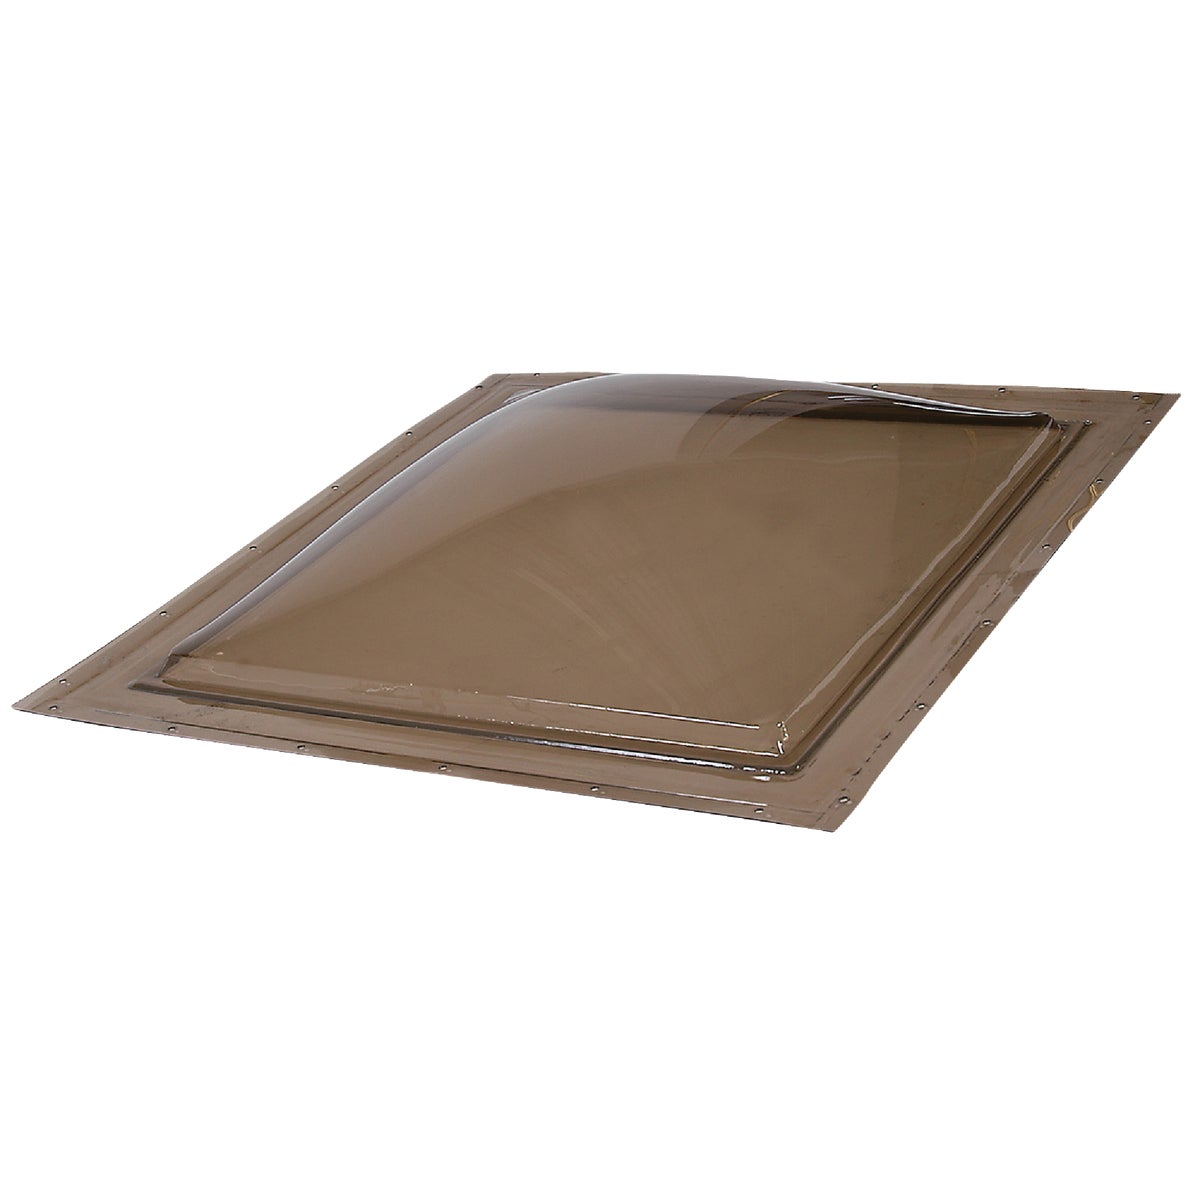 2X2 BRZ FRMLS SKYLIGHT - SF2222BC by Sun Tek Manuf Inc